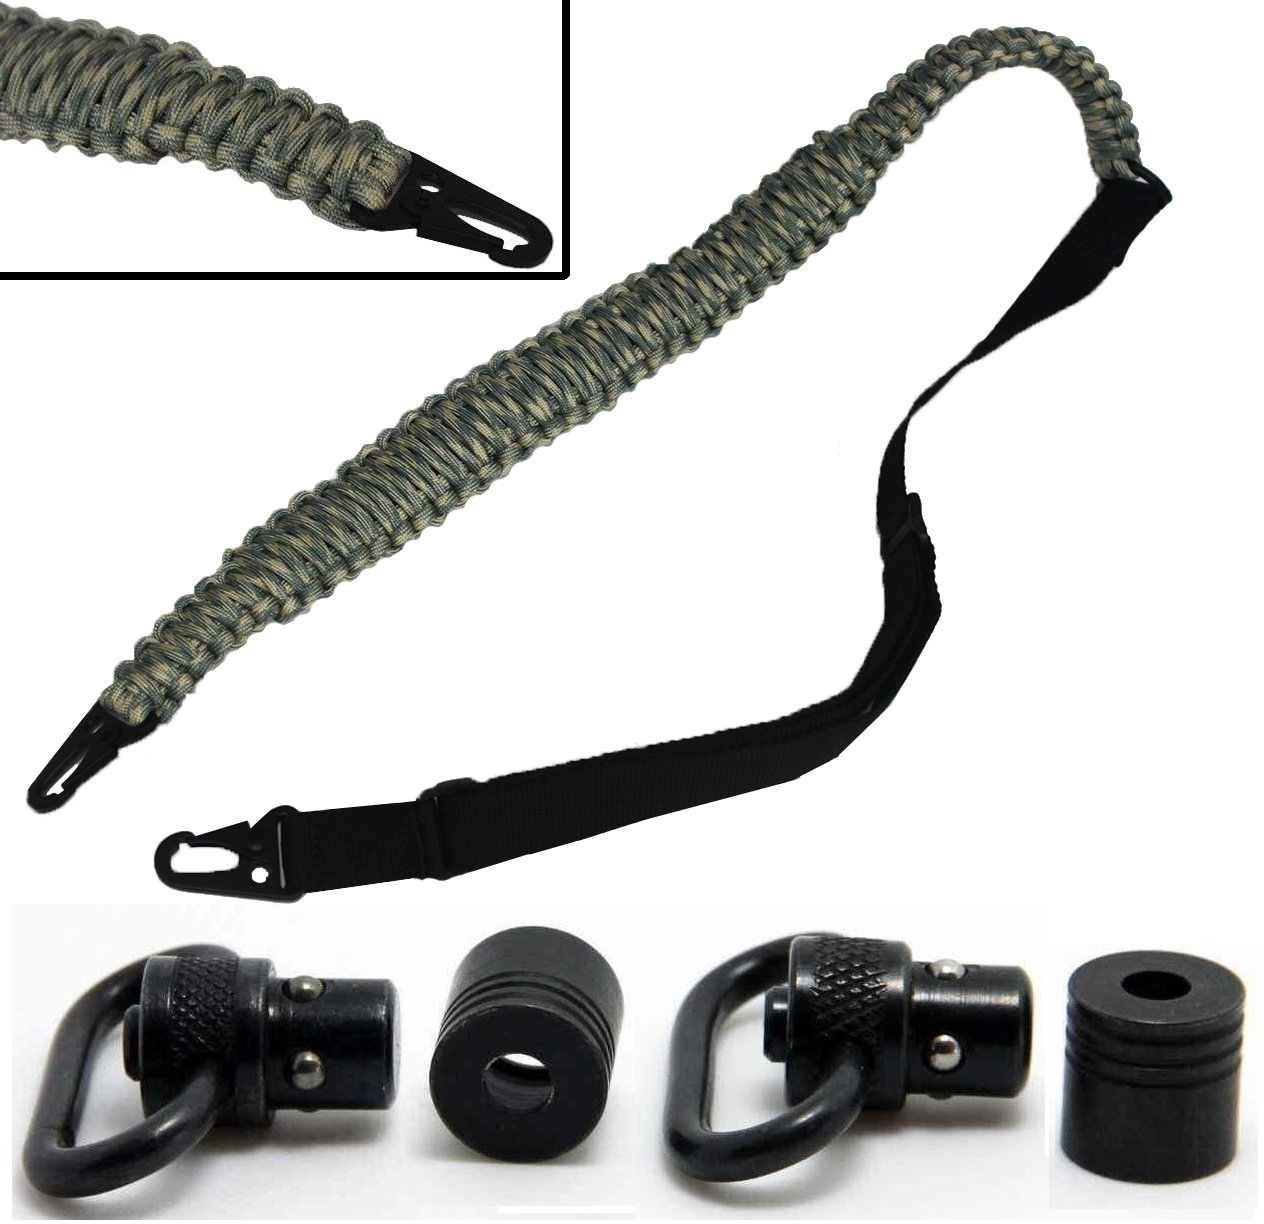 Ultimate Arms Gear Two QD 1'' Slot Loop Push Swivel with Bases + 550 lb Paracord Survial Sling, ACU Army Digital Camo 56' ft Cord with Hook Ends for AR15, AR-15, M4, M16, .223 5.56 .308